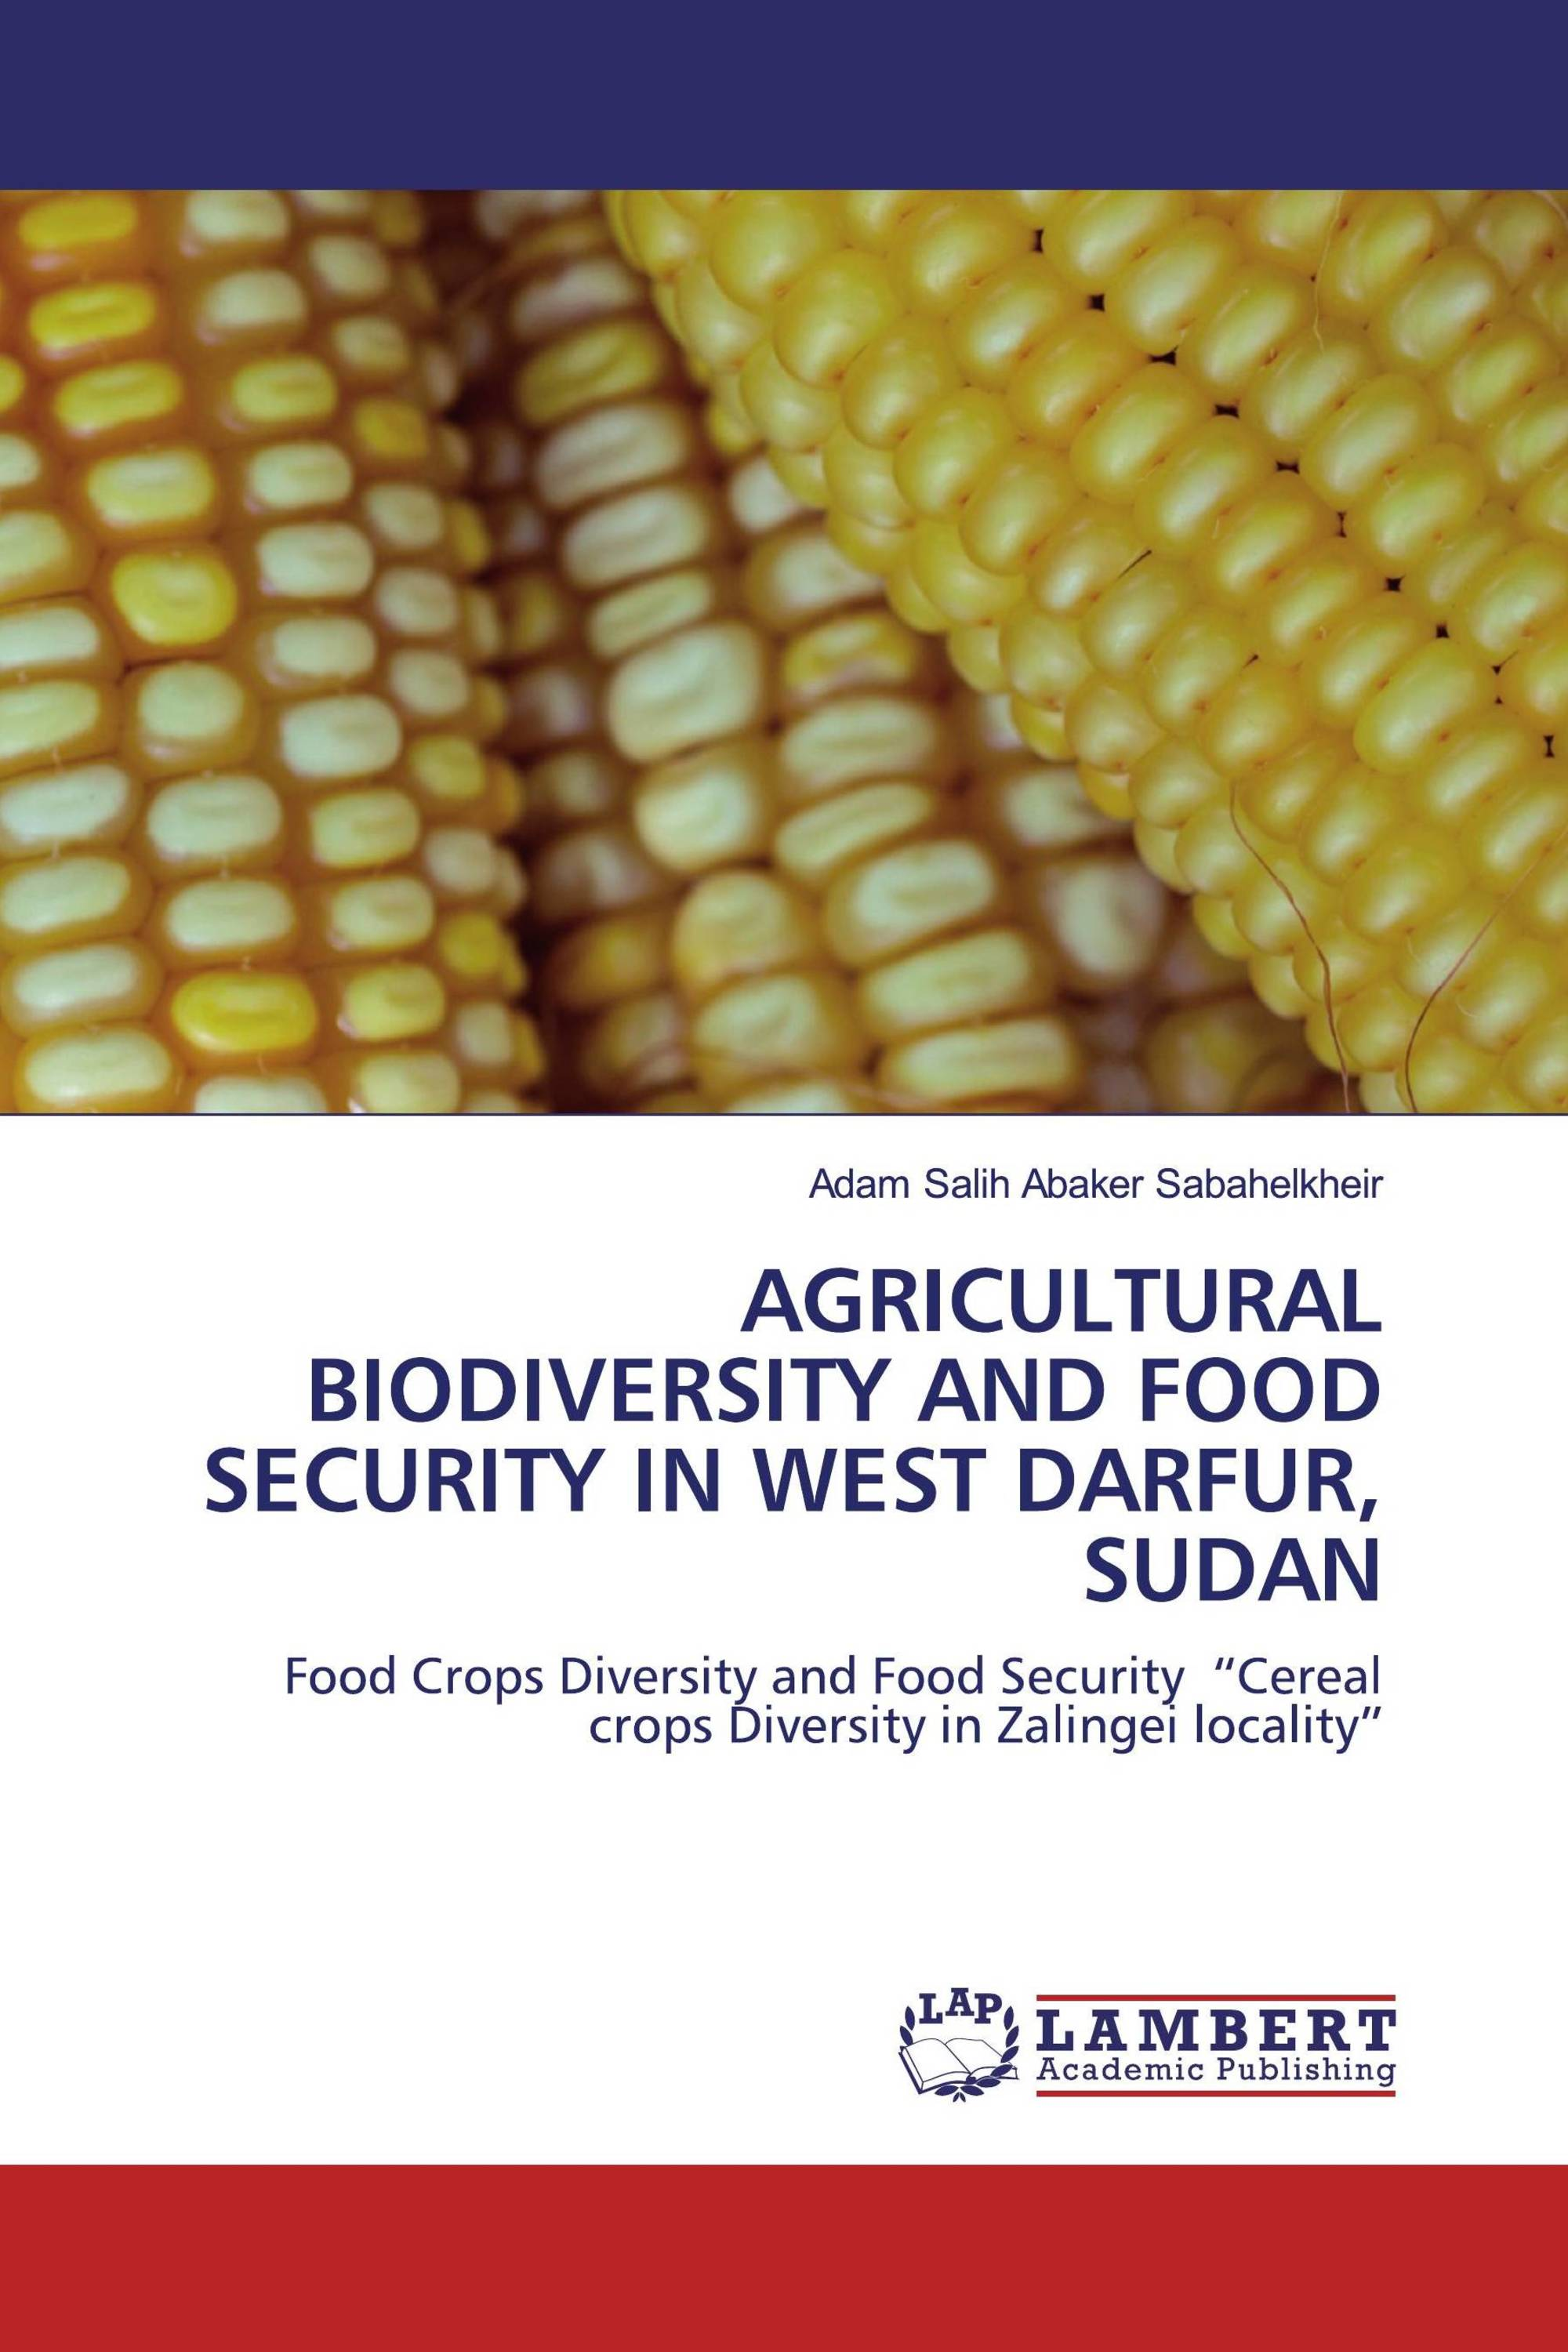 AGRICULTURAL BIODIVERSITY AND FOOD SECURITY IN WEST DARFUR, SUDAN